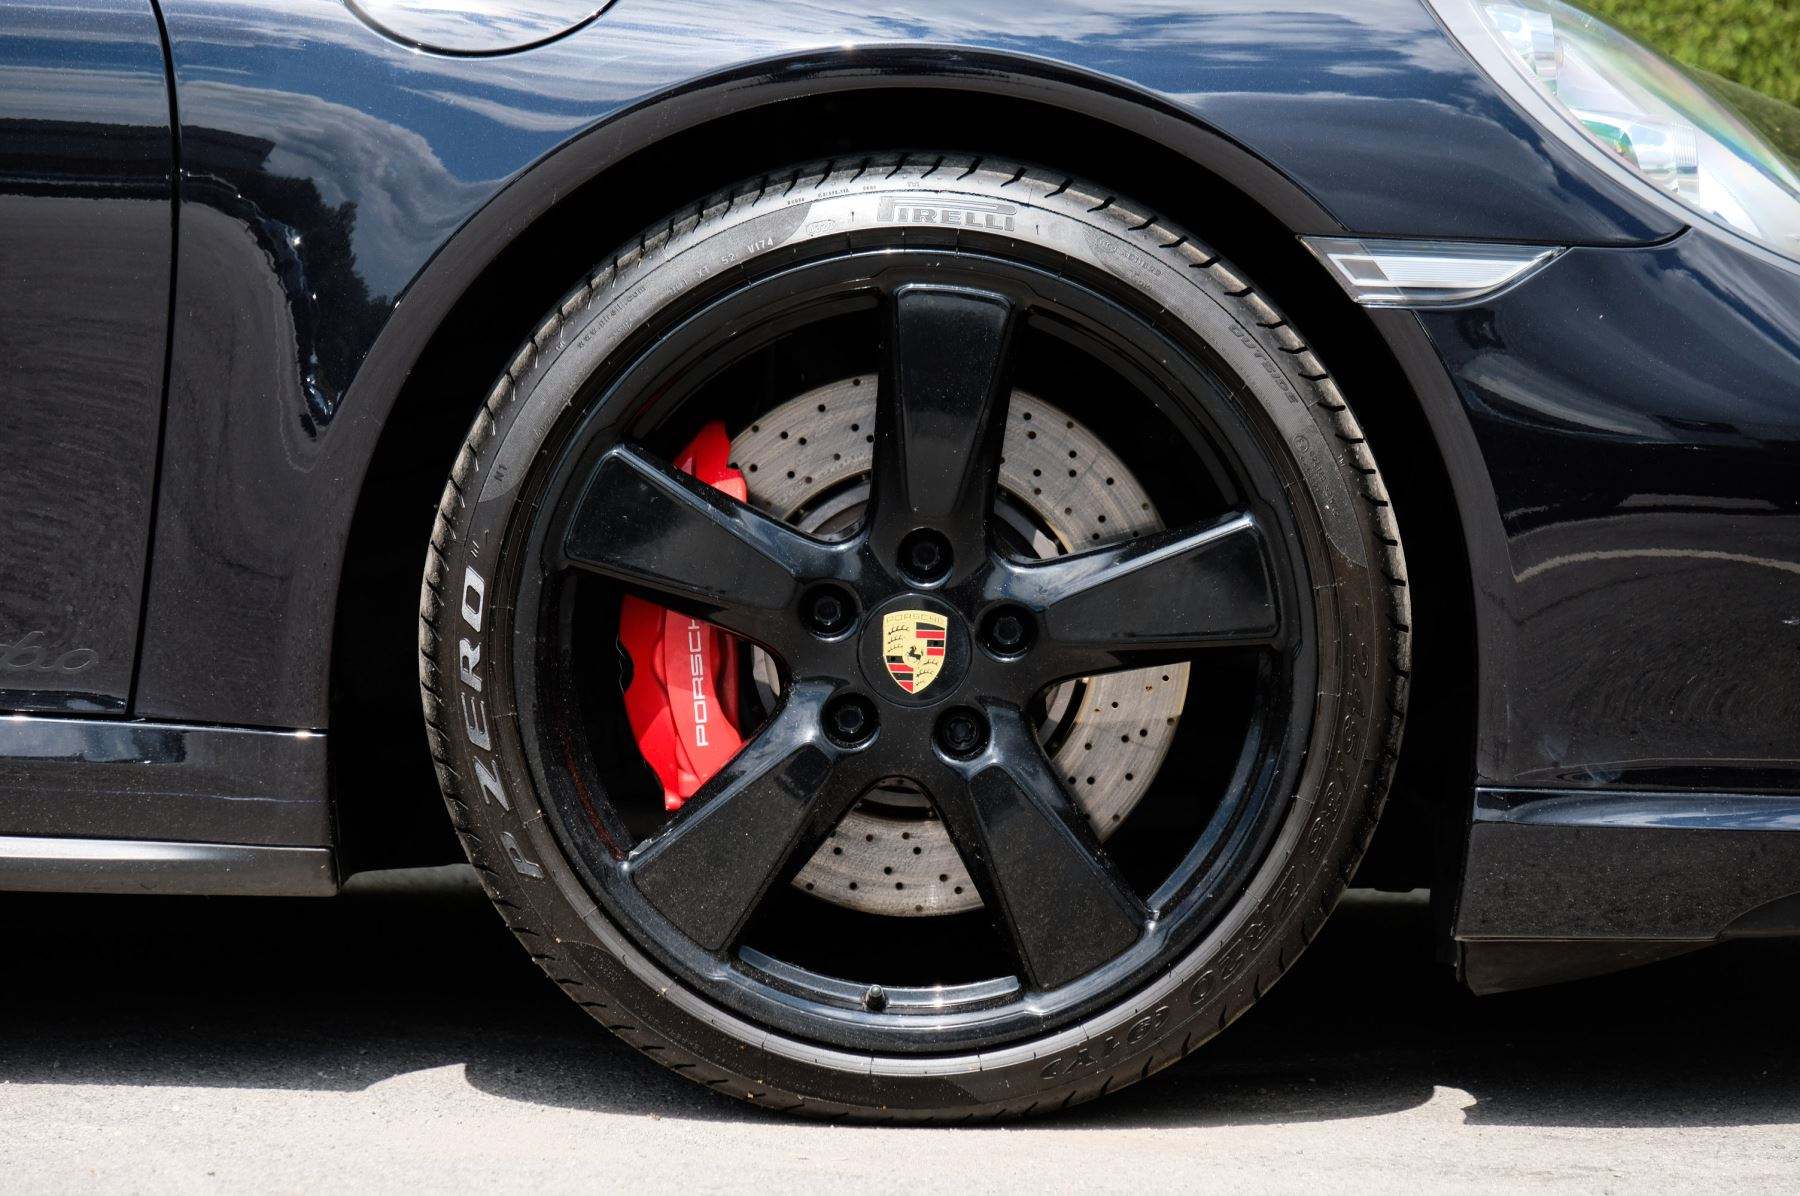 Porsche 911 PDK - Carbon interior package - Privacy Glass - 20 inch Sport Classic wheels image 7